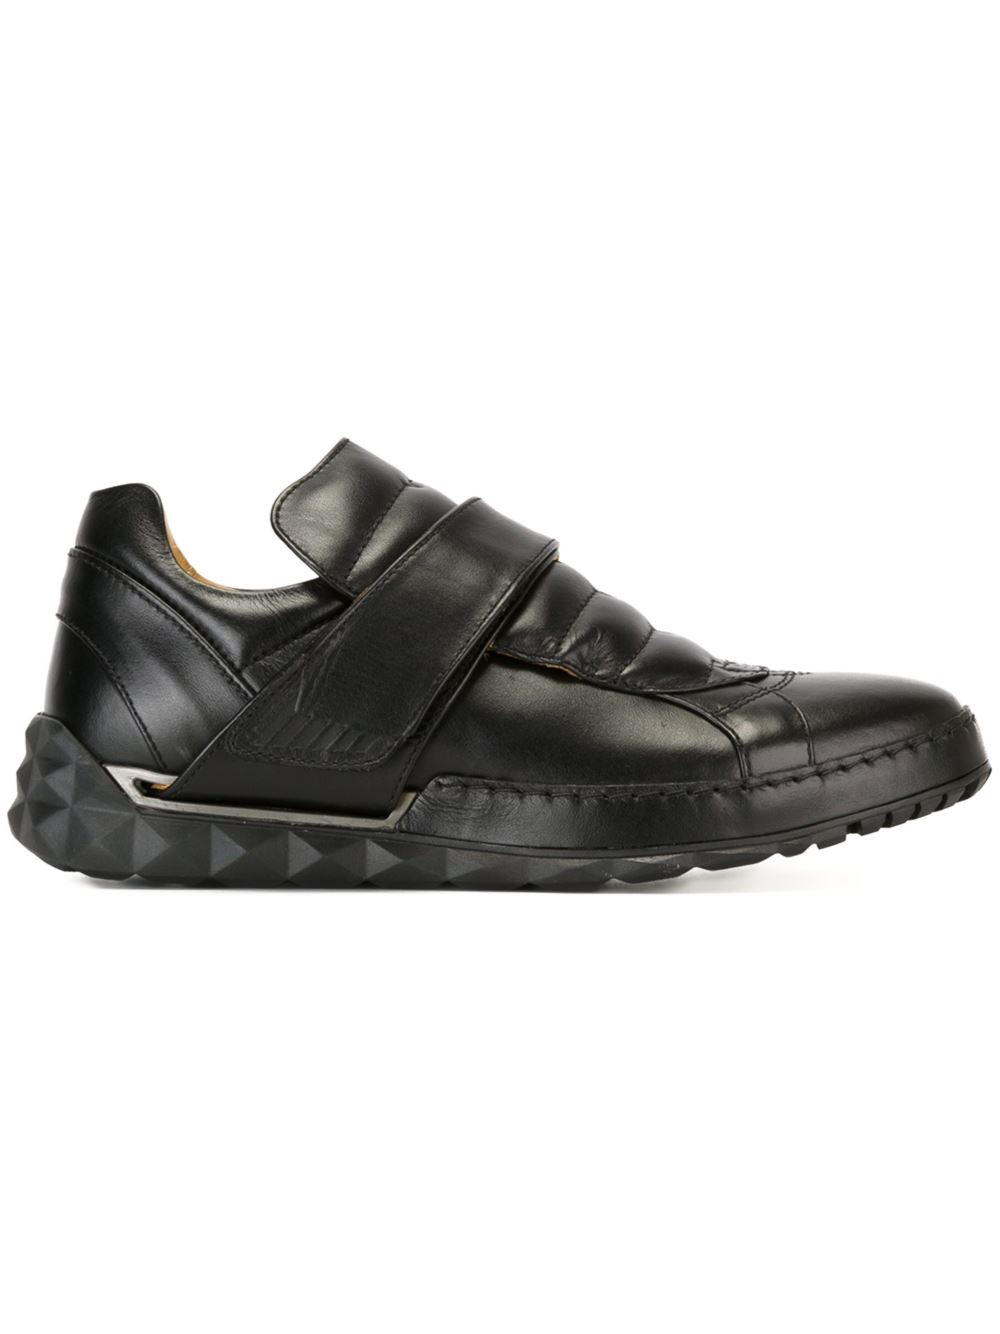 Diesel Leather Velcro Fastening Sneakers In Black For Men